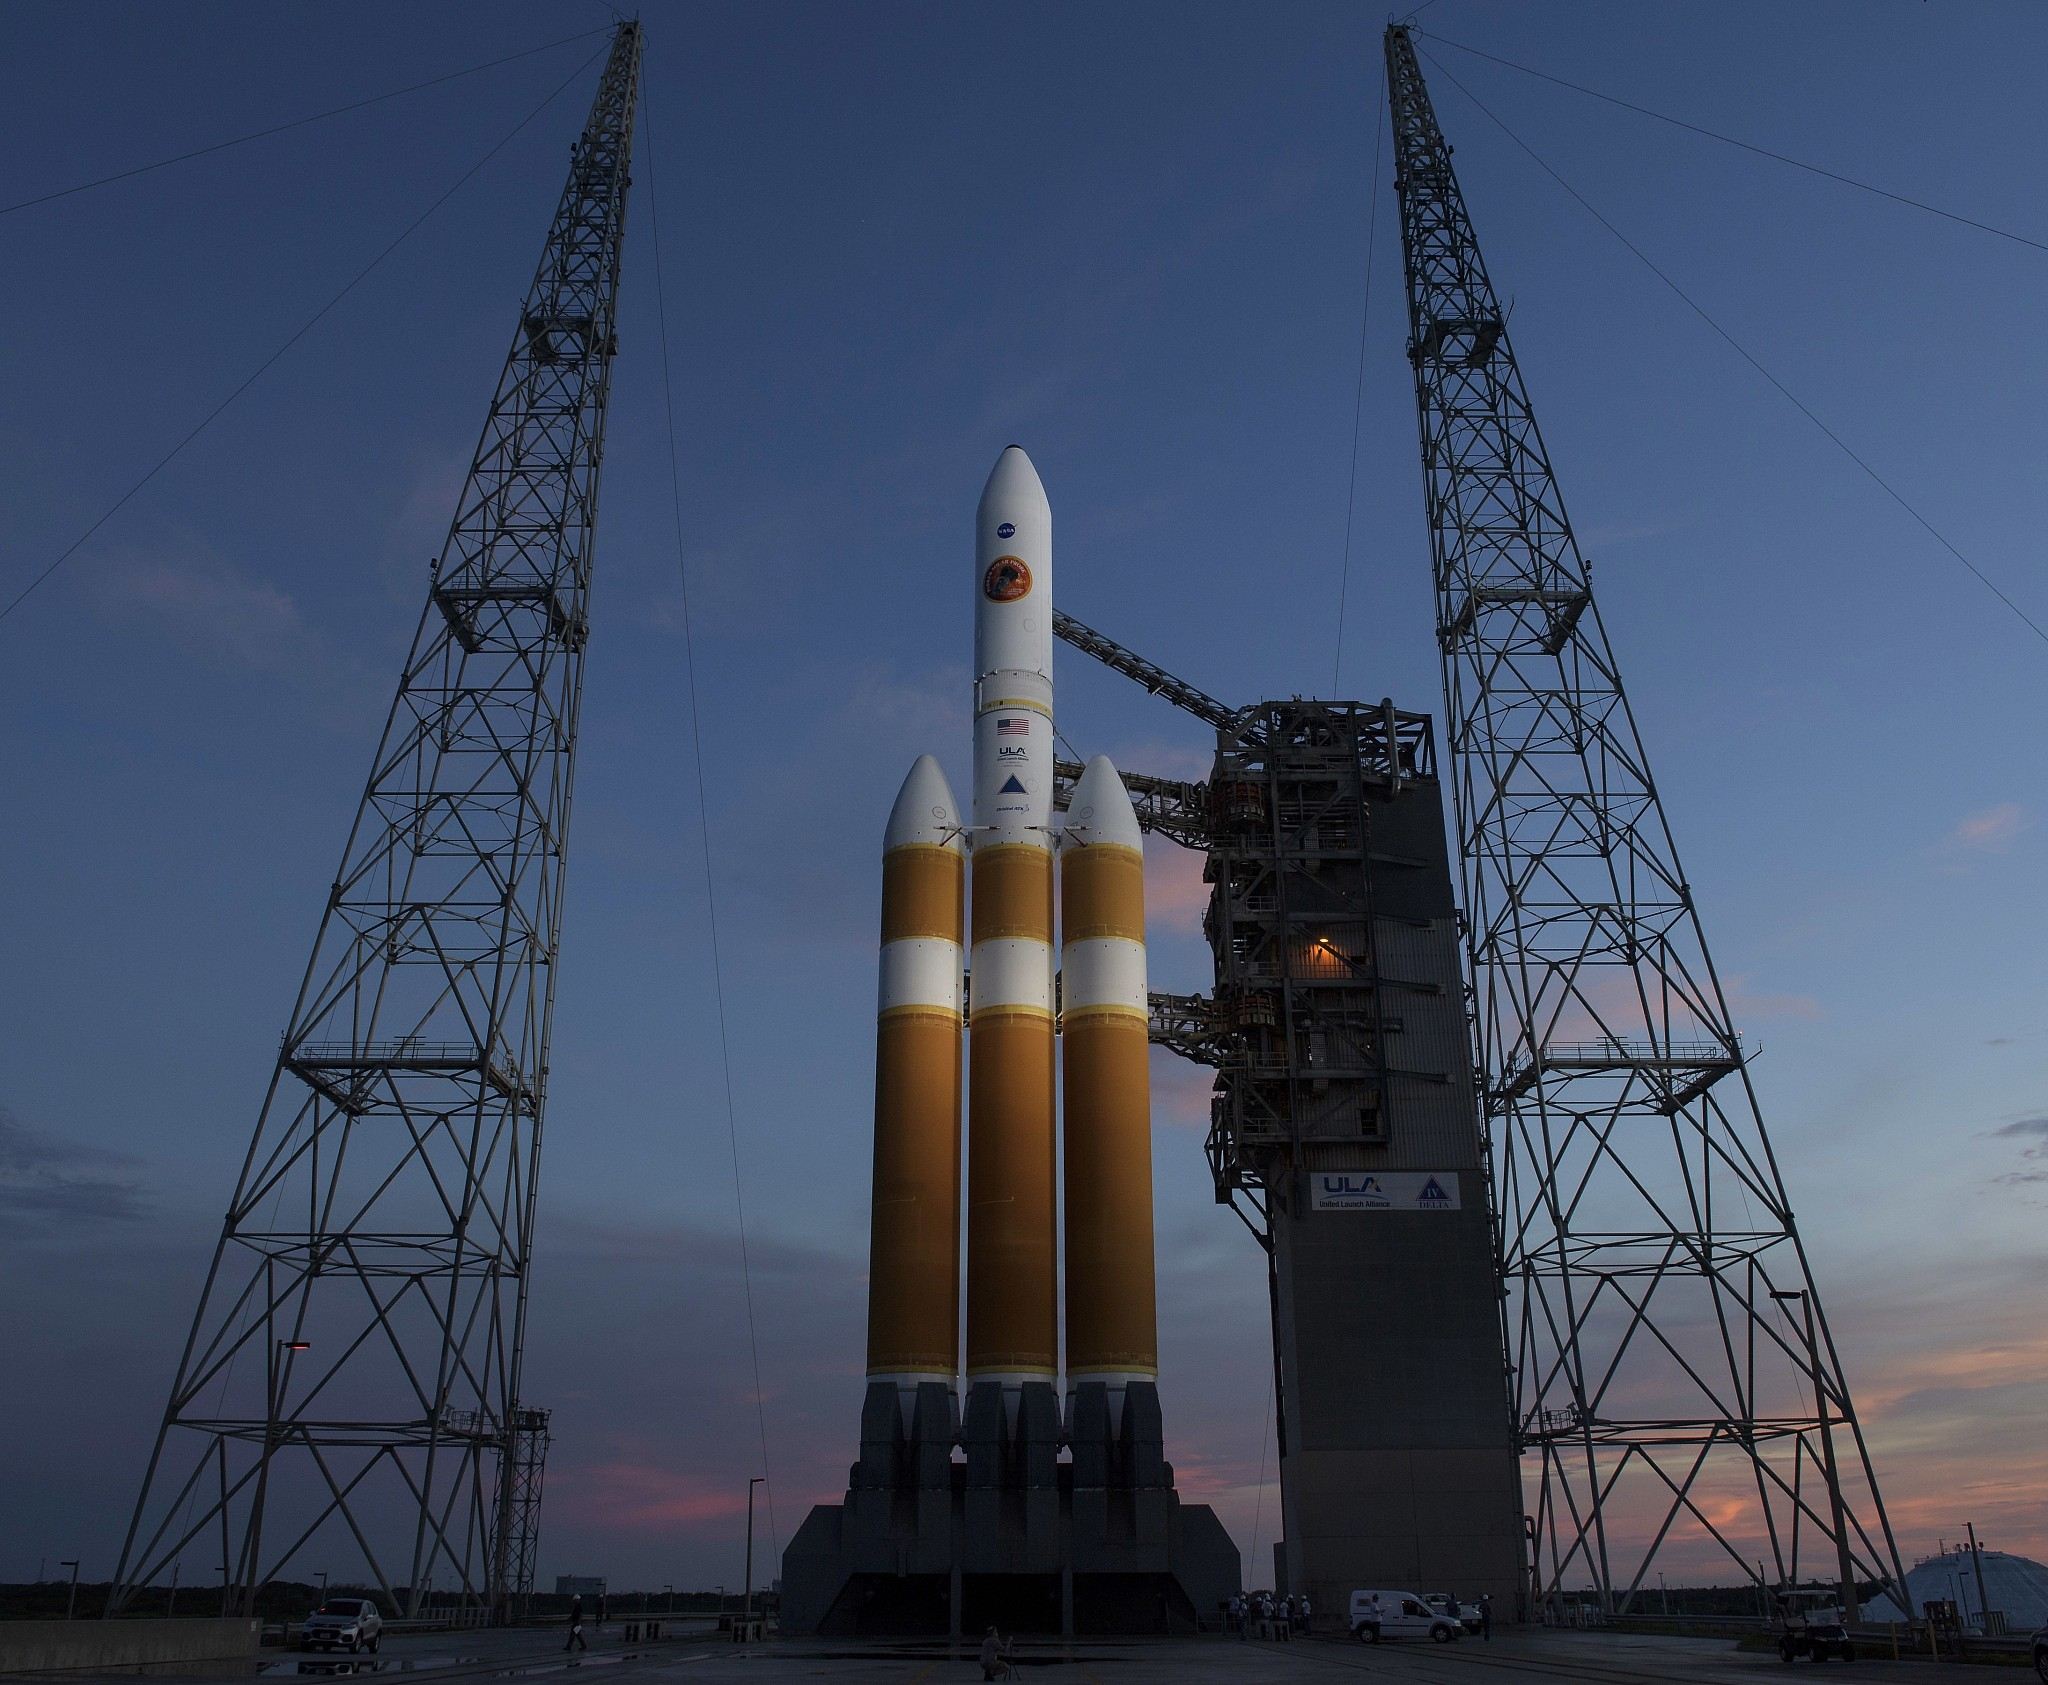 'Touch the sun' mission: NASA delays launch of Parker Solar Probe